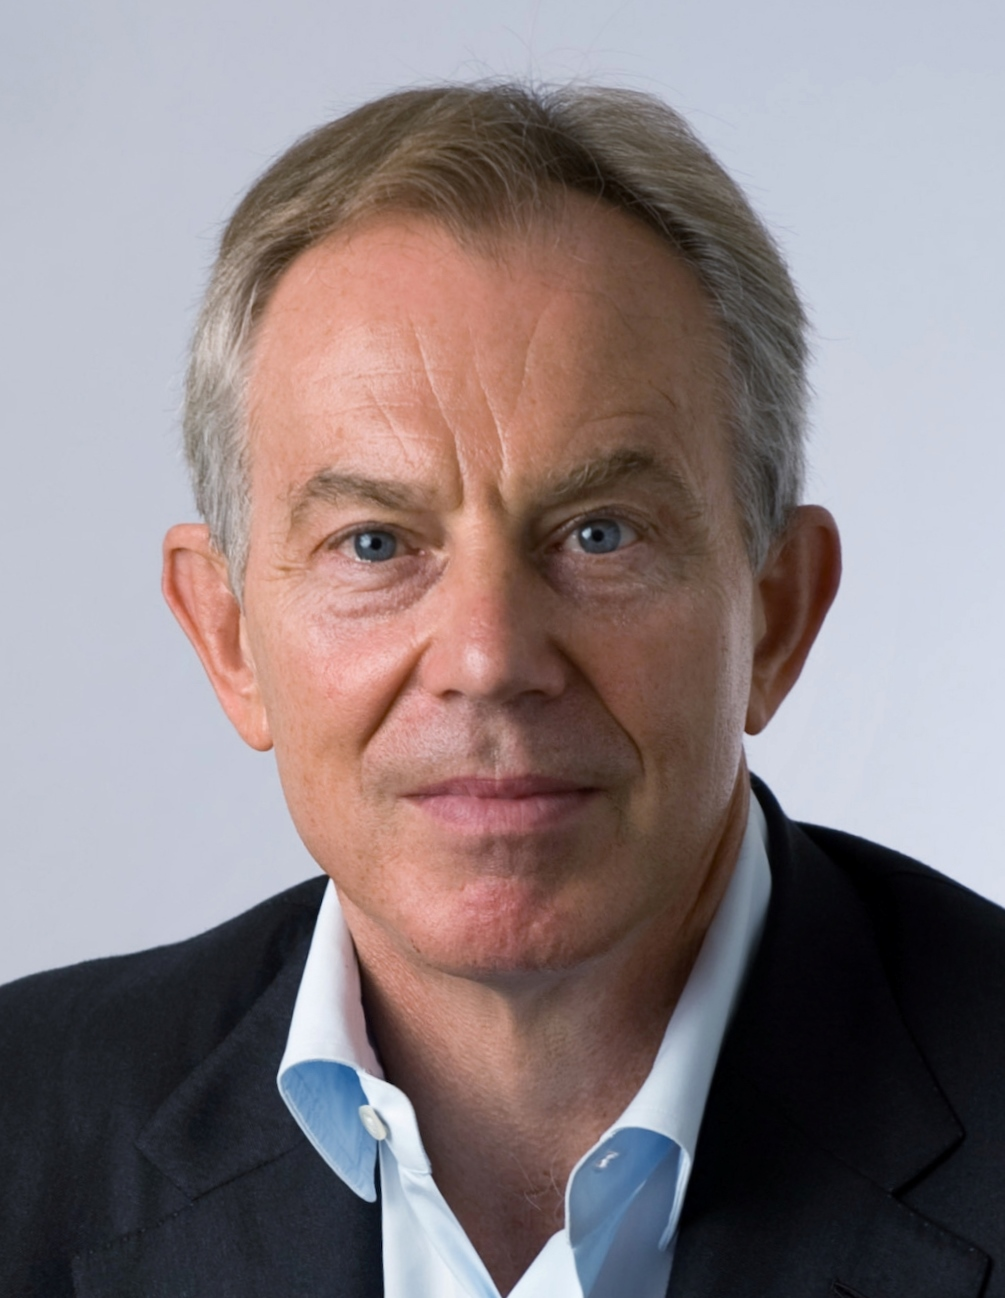 Tony Blair to receive Lincoln Leadership Prize